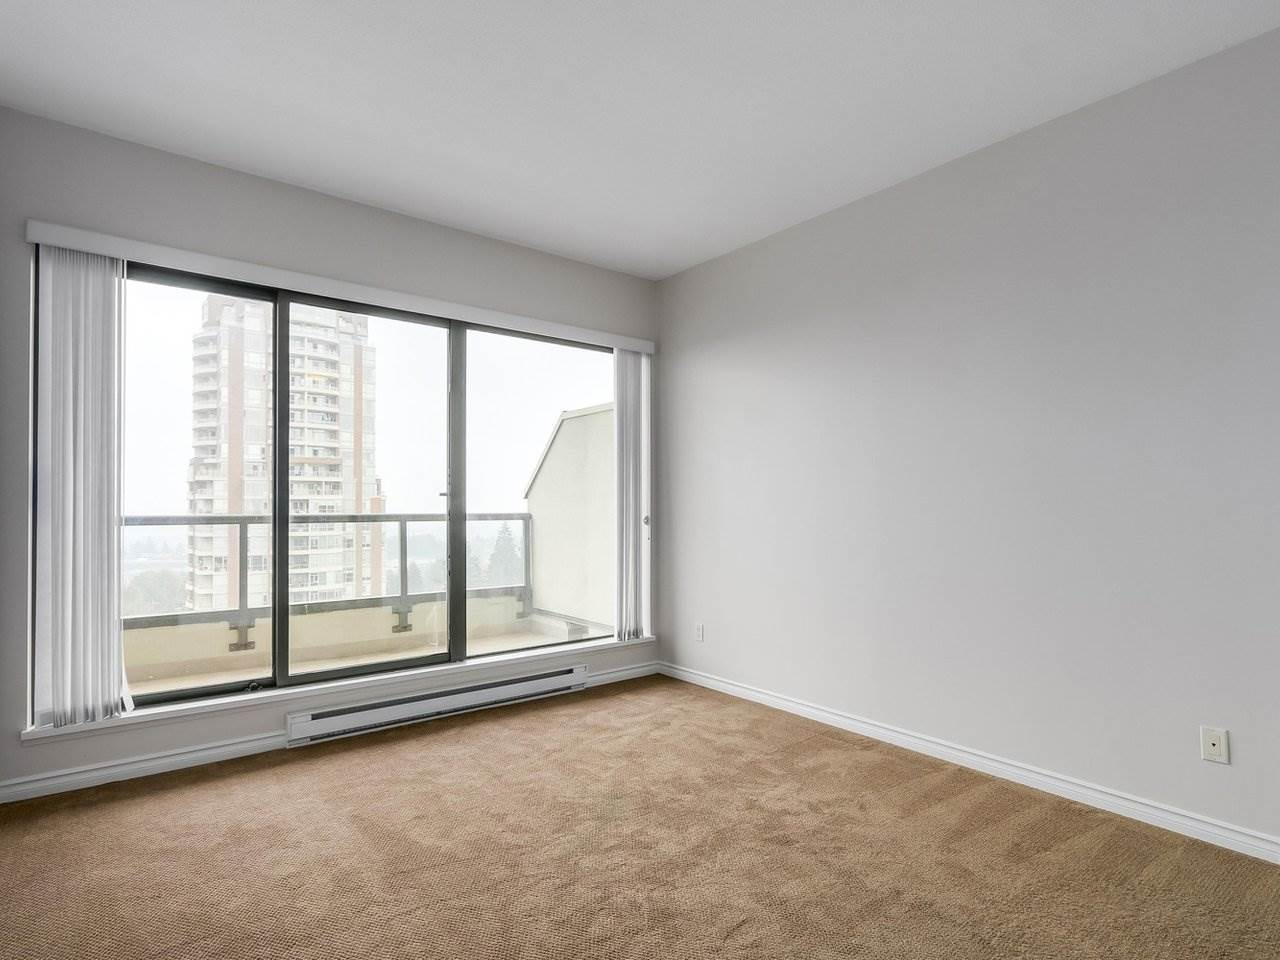 Condo Apartment at 1903 6837 STATION HILL DRIVE, Unit 1903, Burnaby South, British Columbia. Image 10